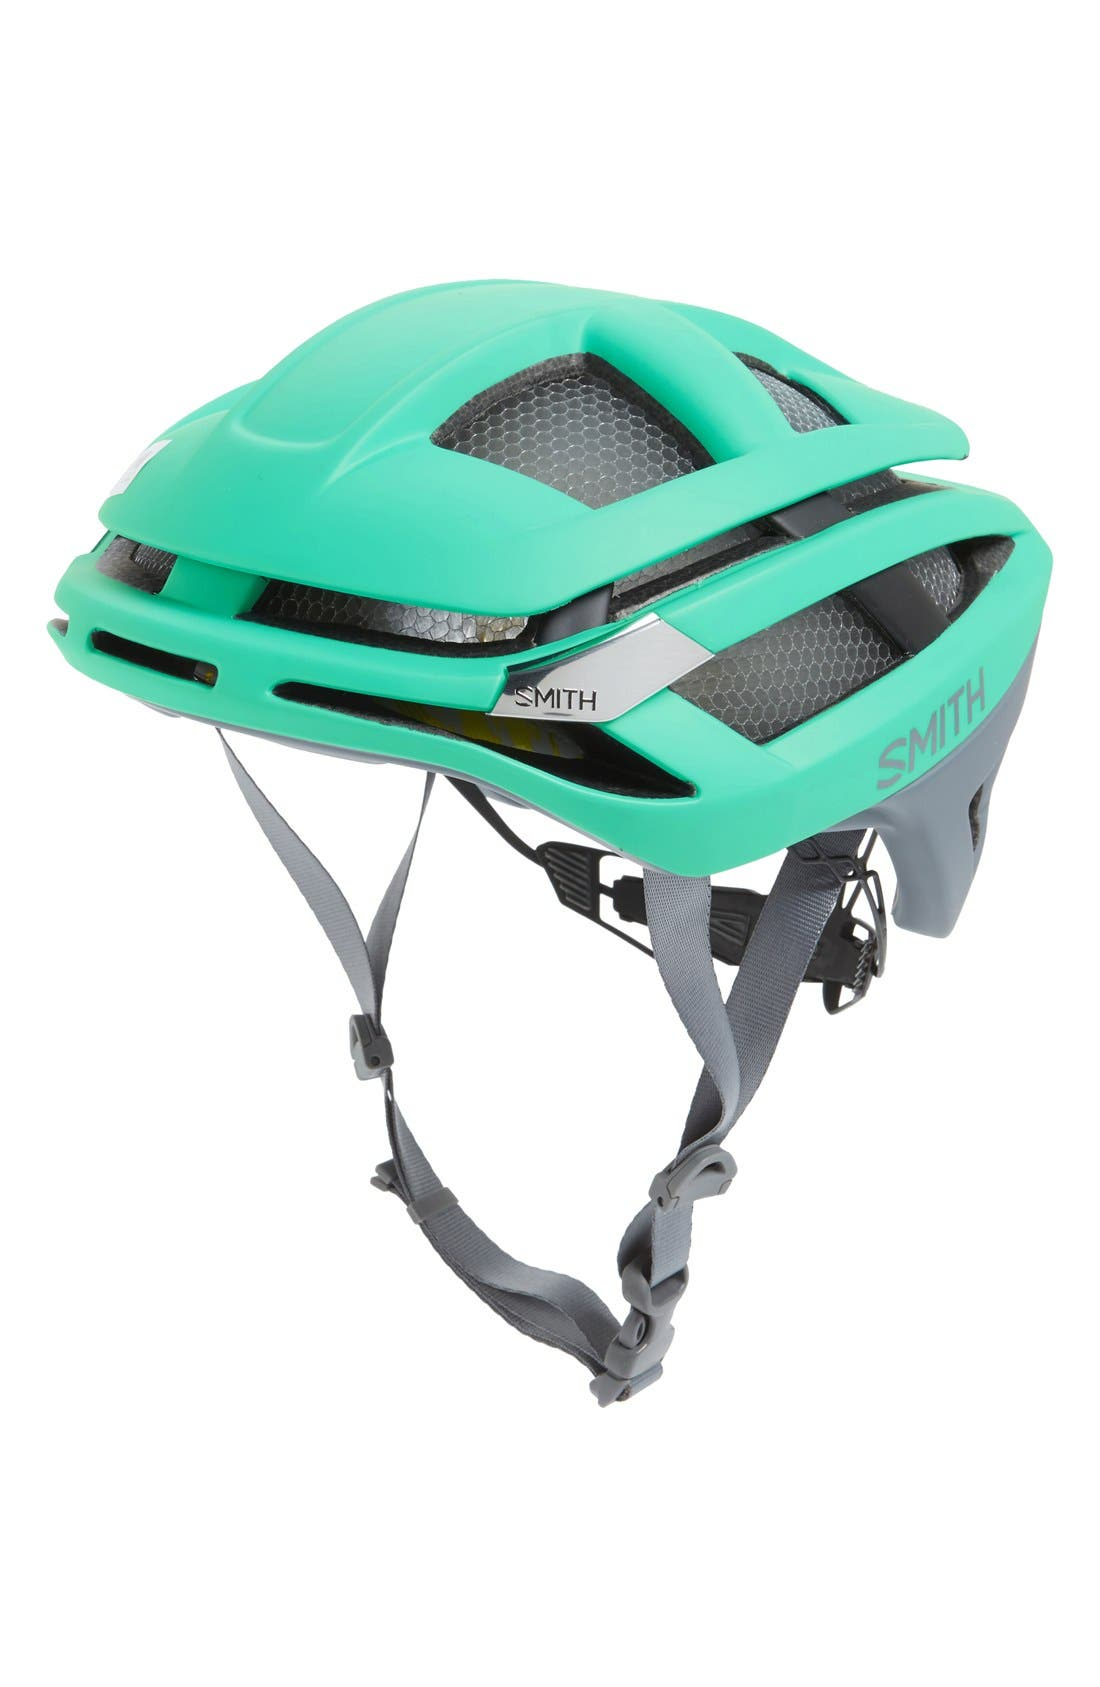 'Overtake with MIPS' Biking Racer Helmet,                         Main,                         color, MATTE OPAL/ CHARCOAL